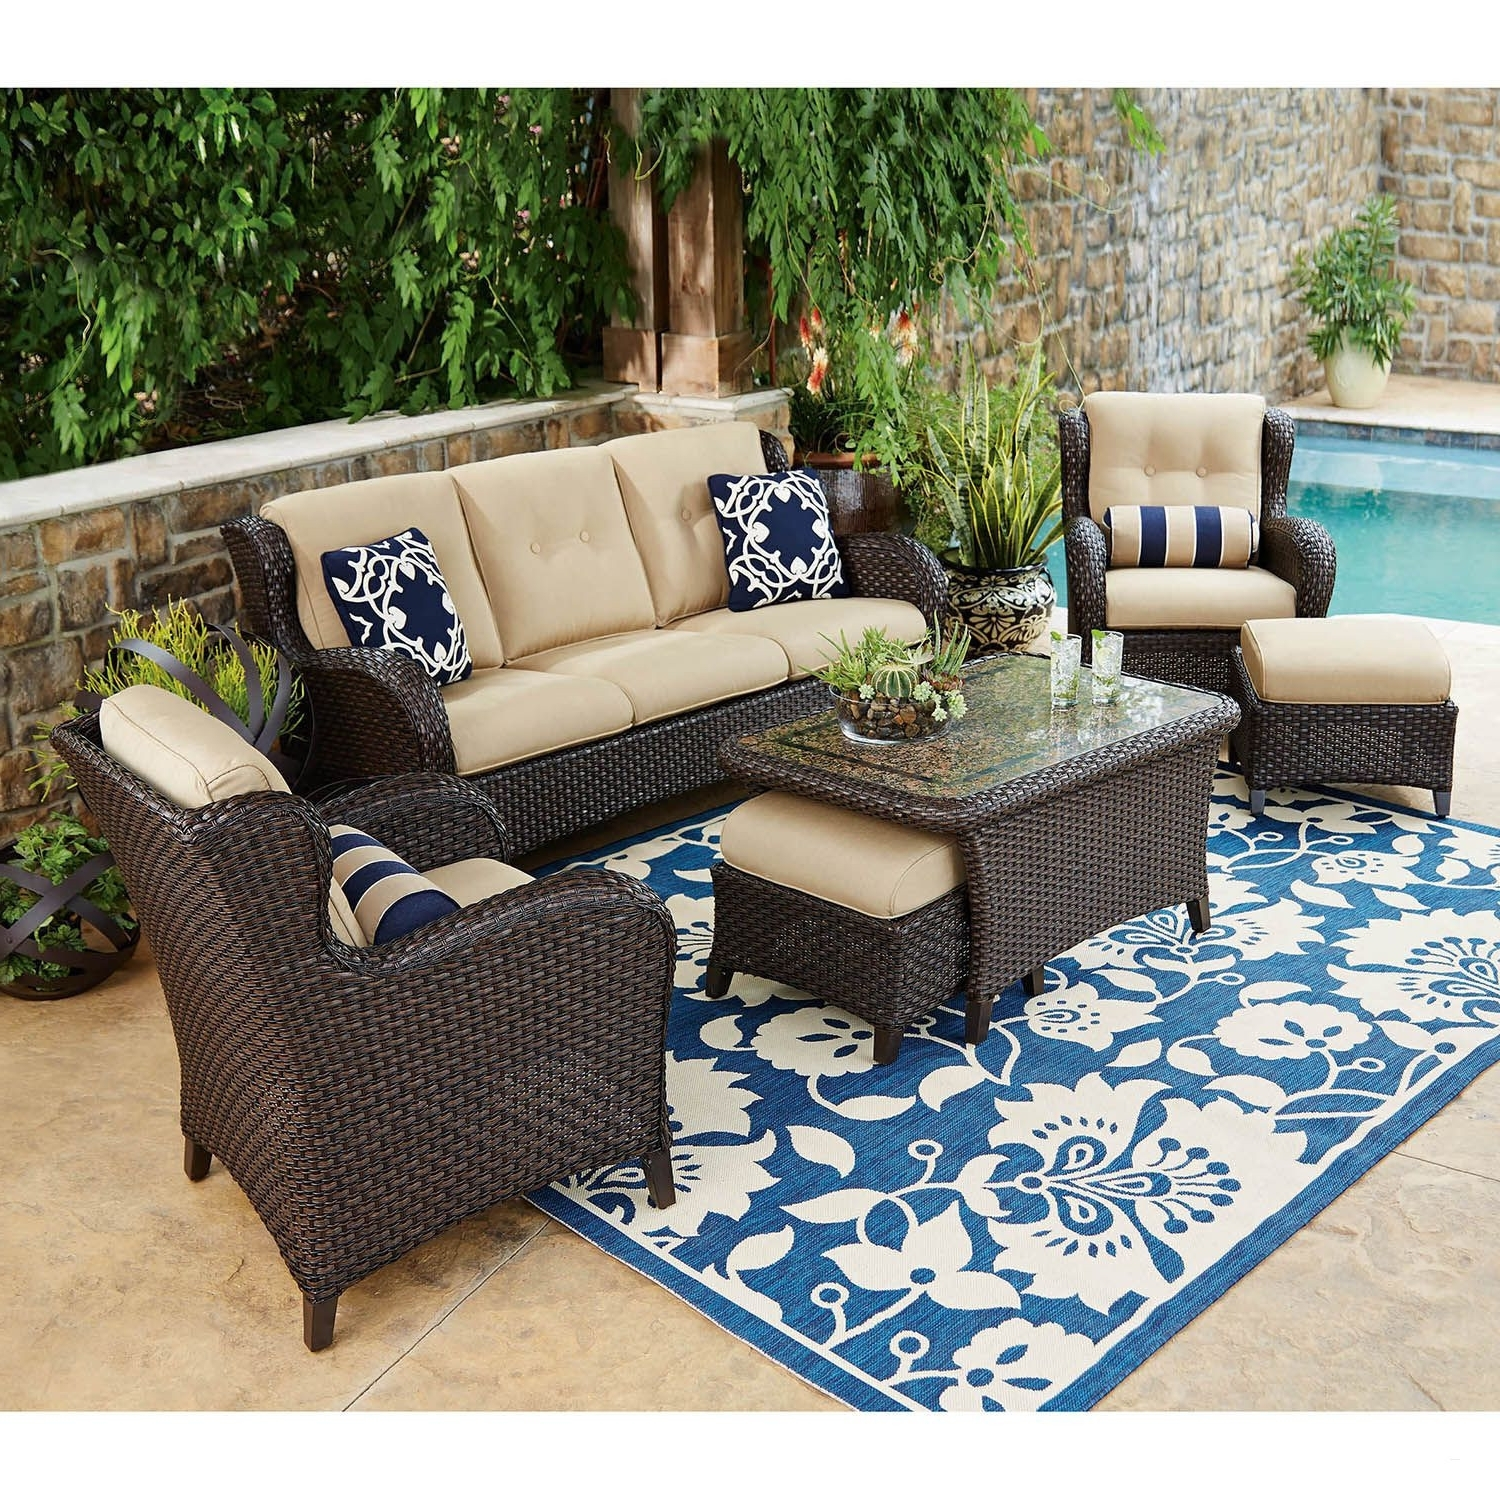 Widely Used Kohls Patio Umbrellas Luxury Sonoma Patio Furniture Best Chair 49 Inside Kohls Patio Umbrellas (View 20 of 20)